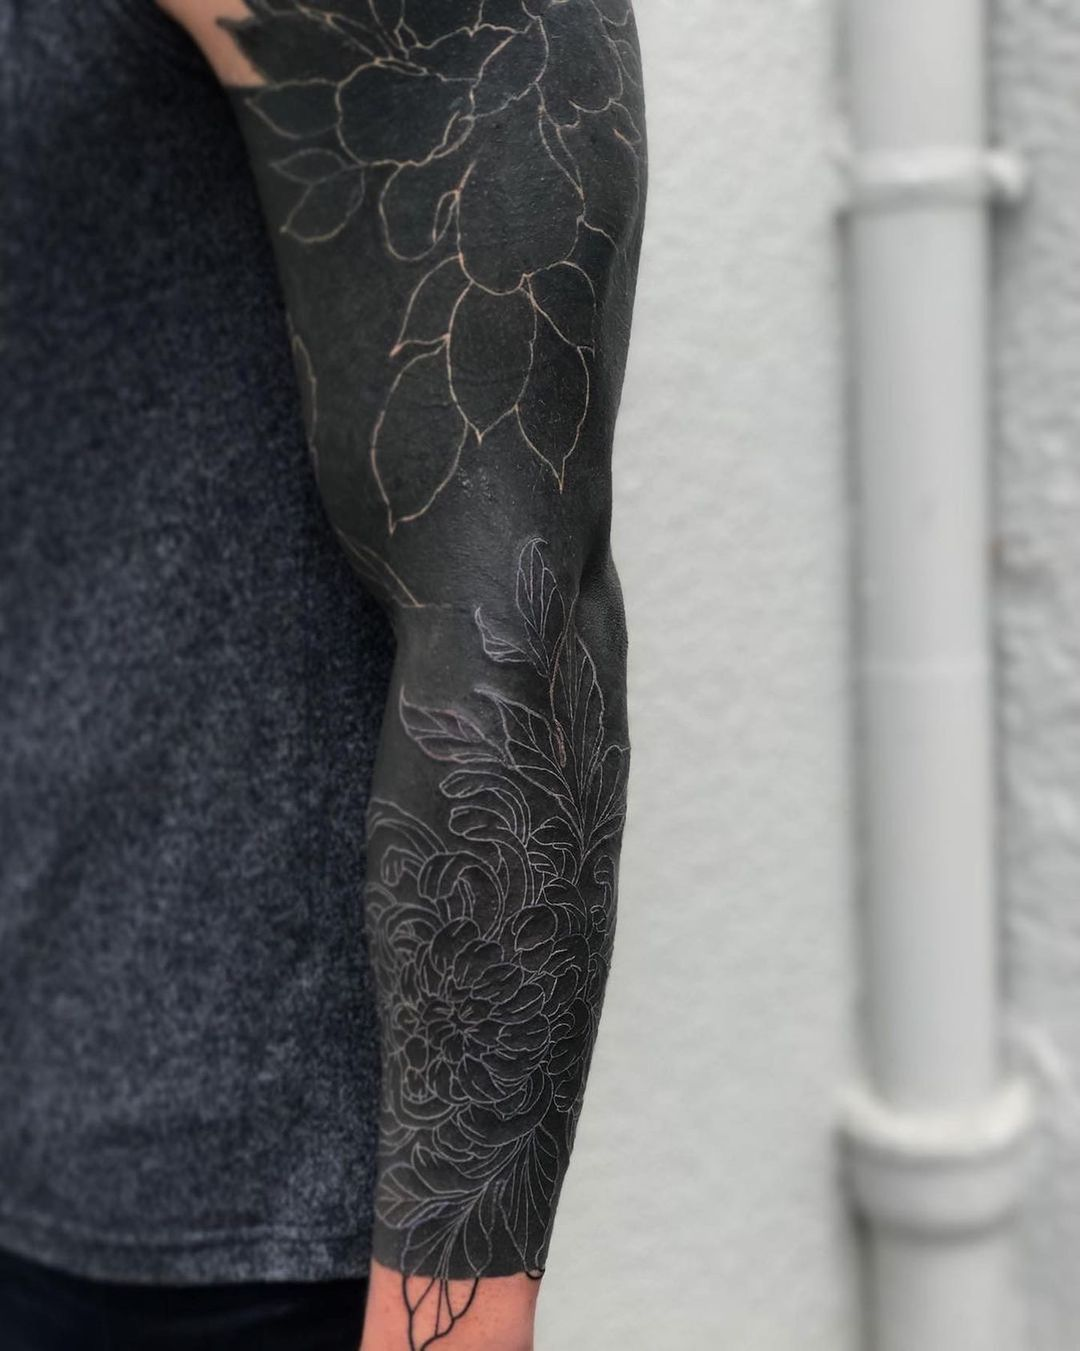 25 blackout tattoos with white ink for the perfect black and white look